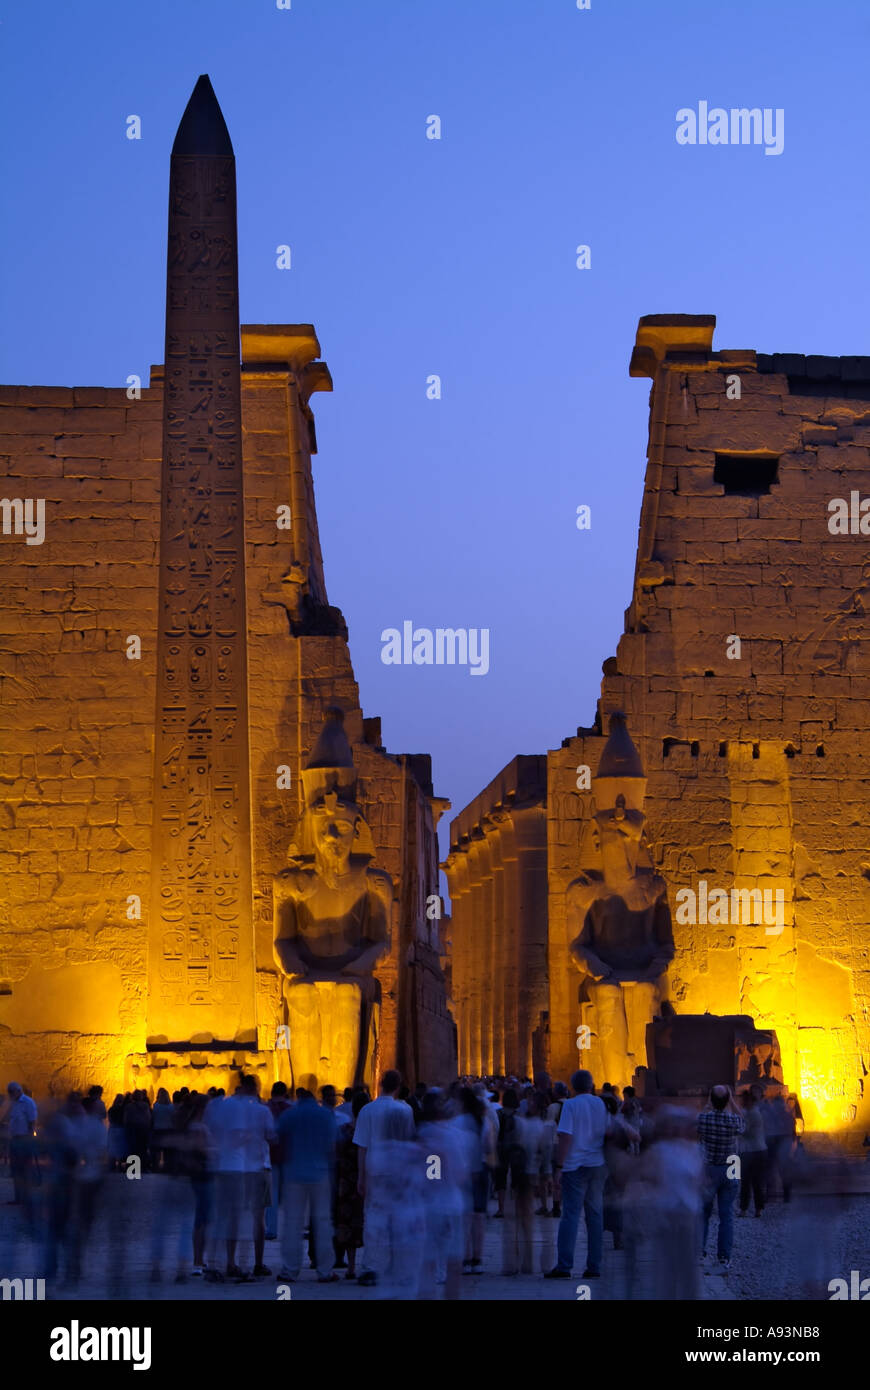 Luxor Temple at night, Egypt Stock Photo